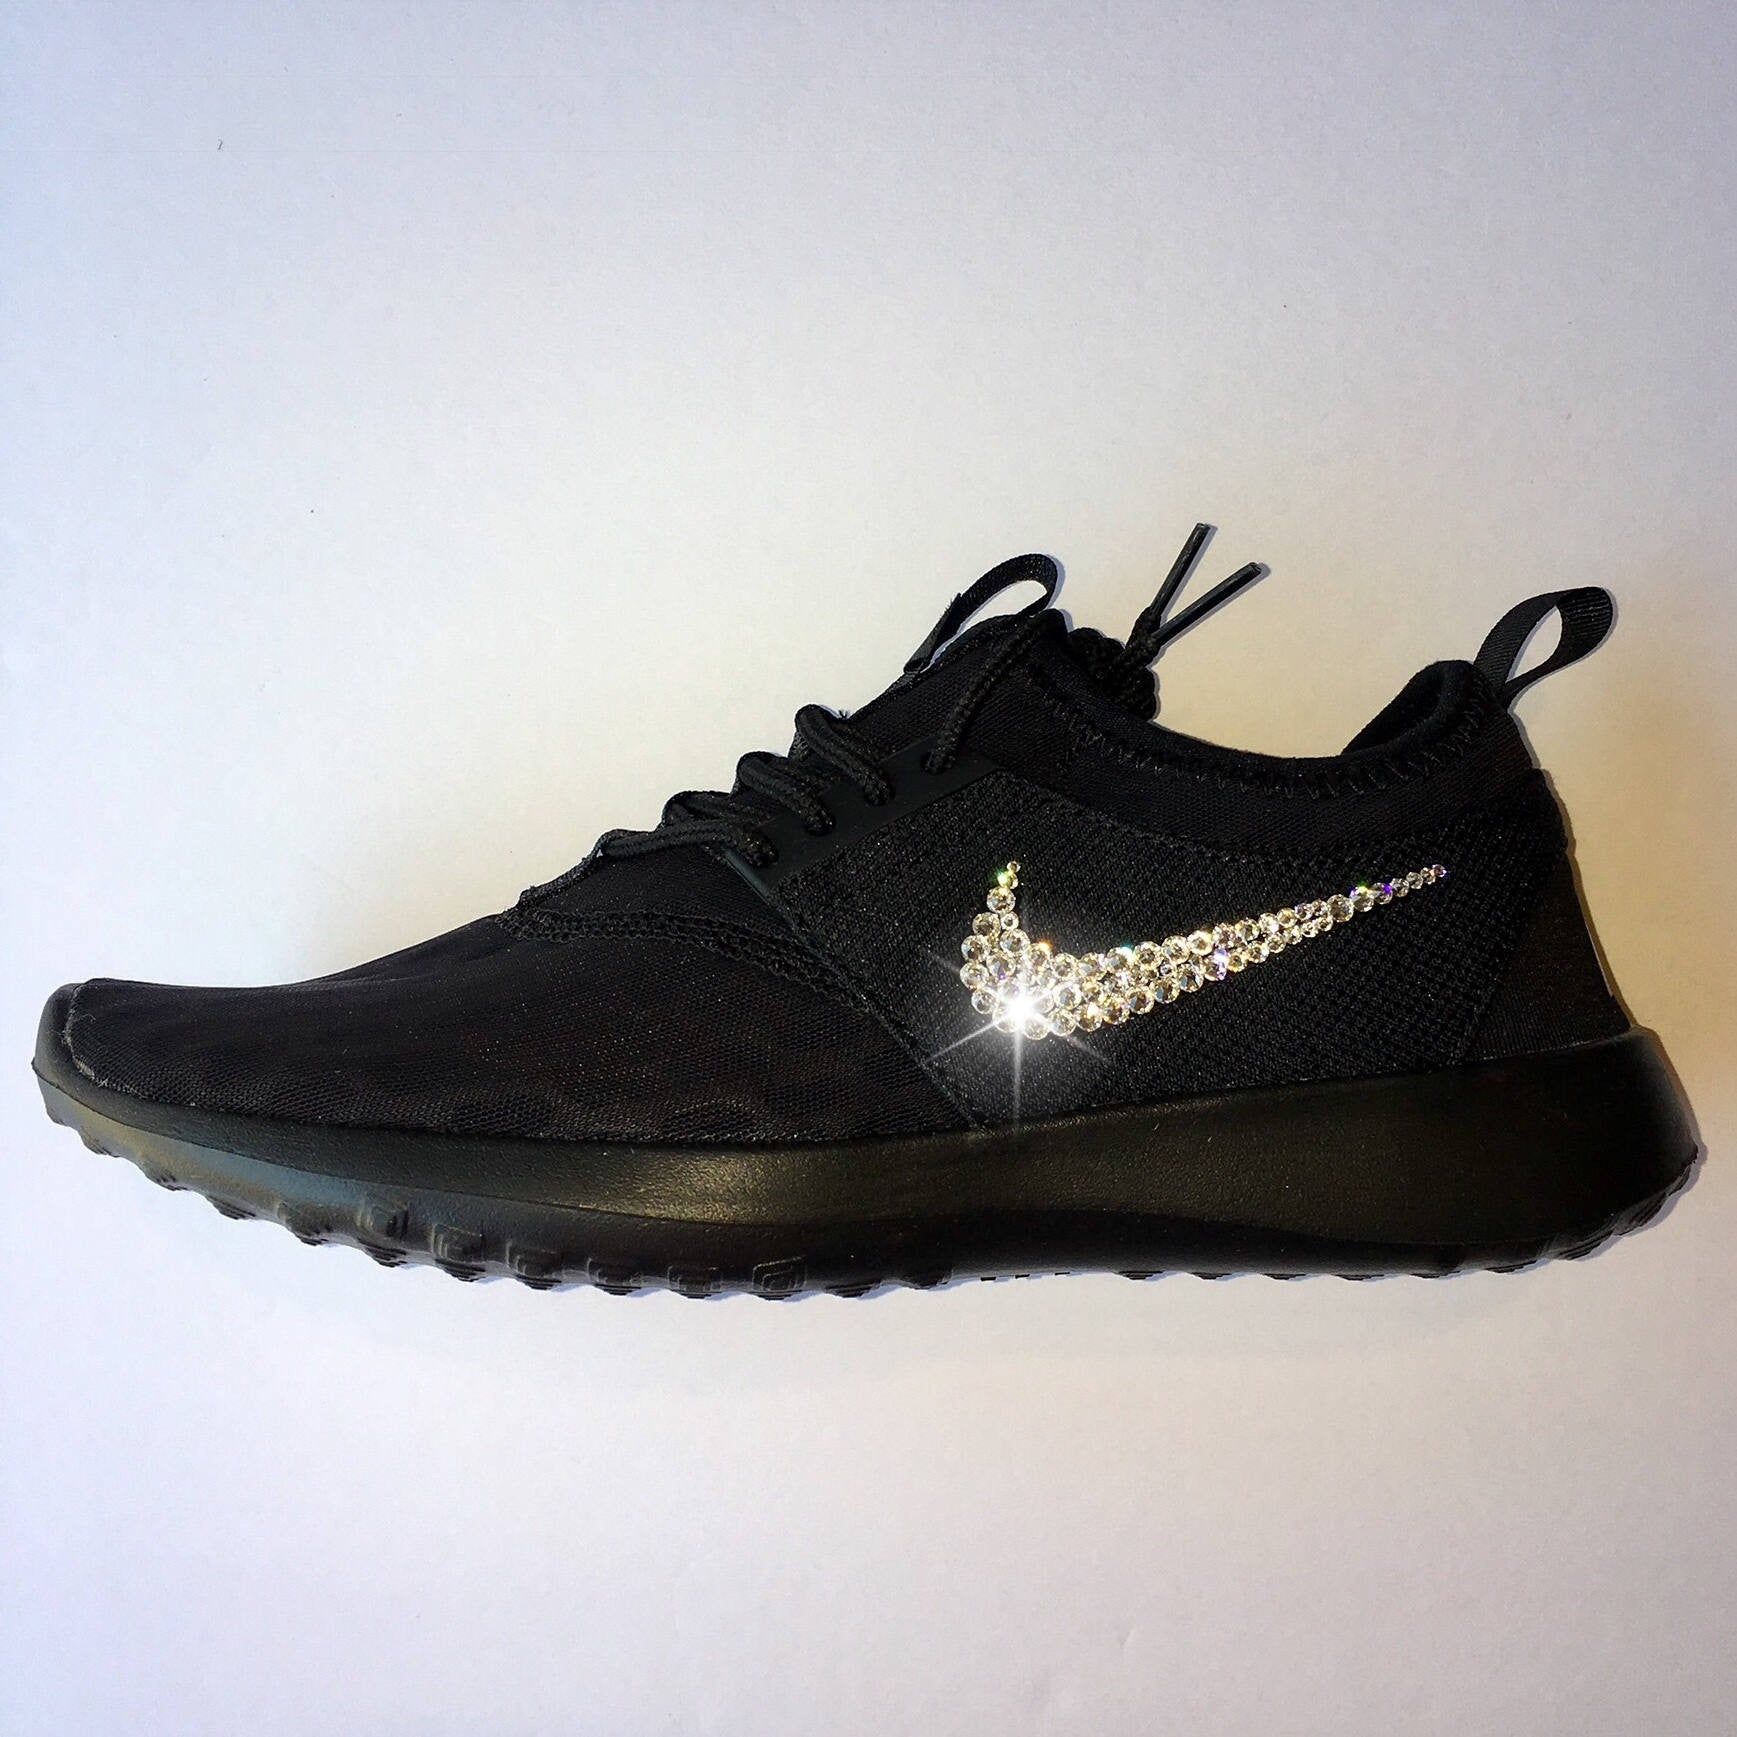 Bling Nike Juvenate Shoes with Swarovski Crystals   All Black   Bedazzled  w 100% ... d04f0dfa7797